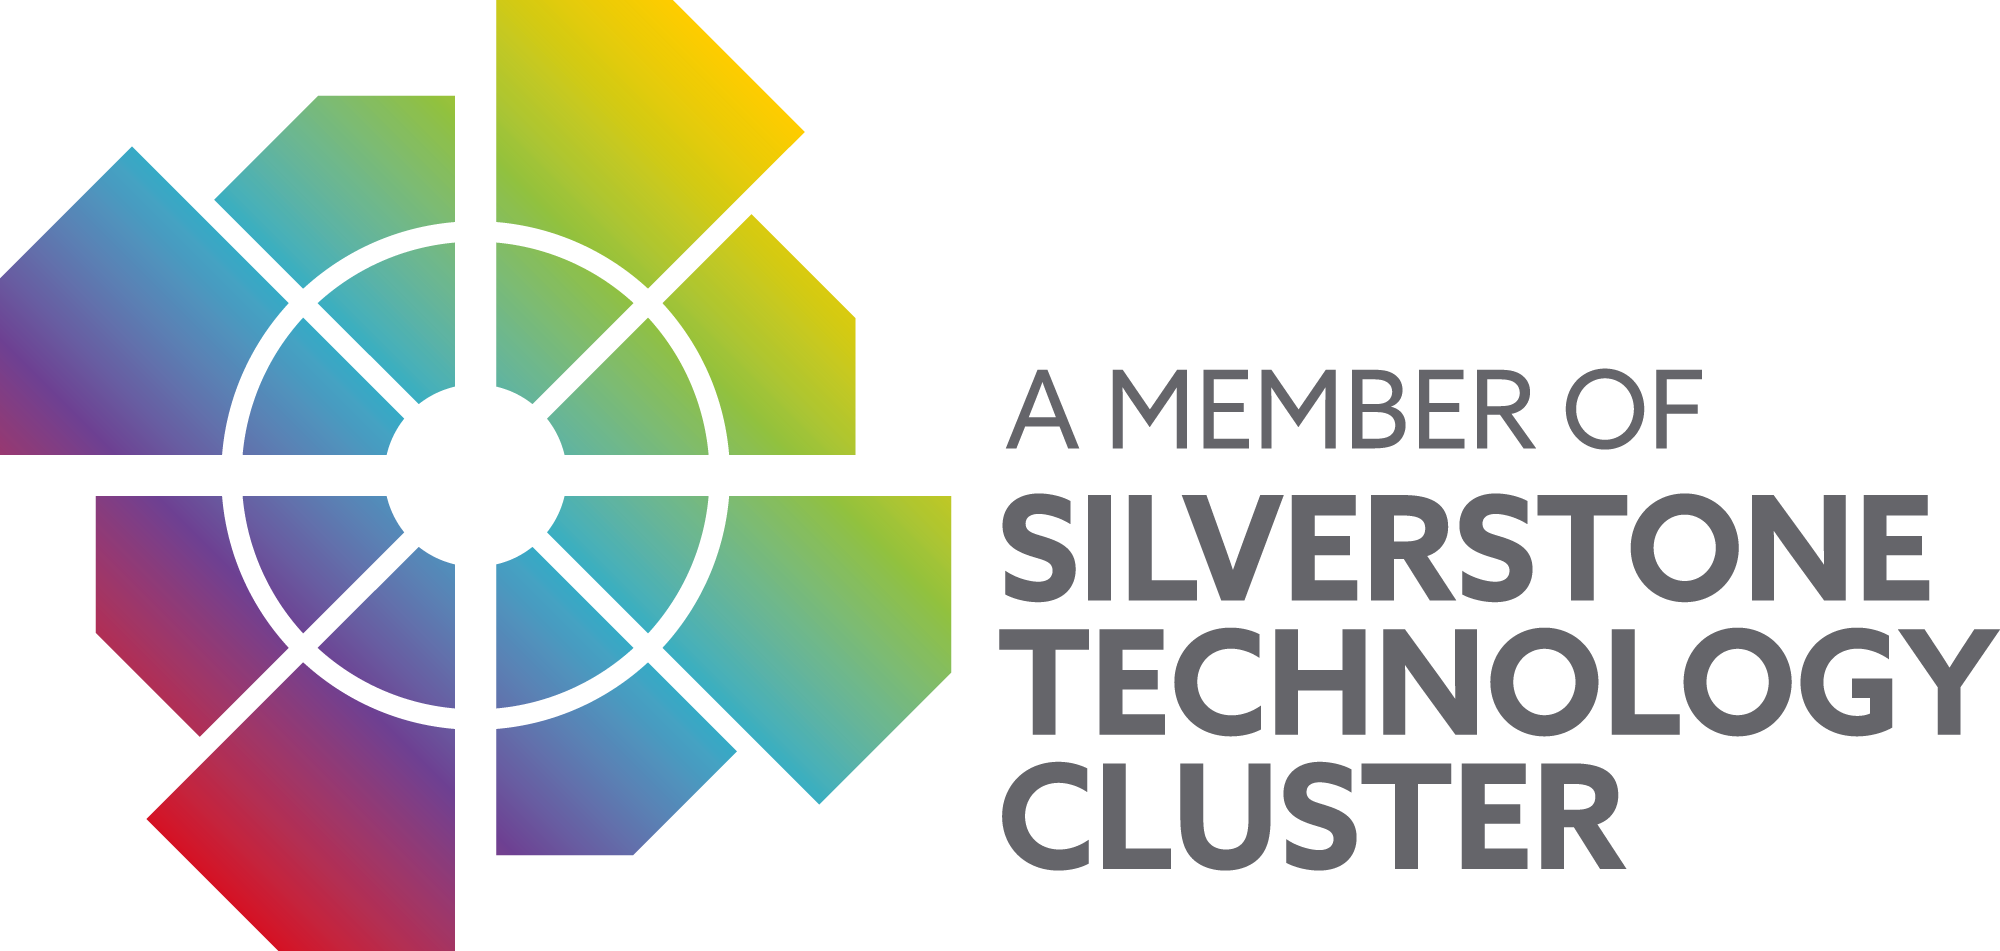 Silverstone Technology Cluster logo - a vibrant cluster at the heart of the oxford-cambridge corridor